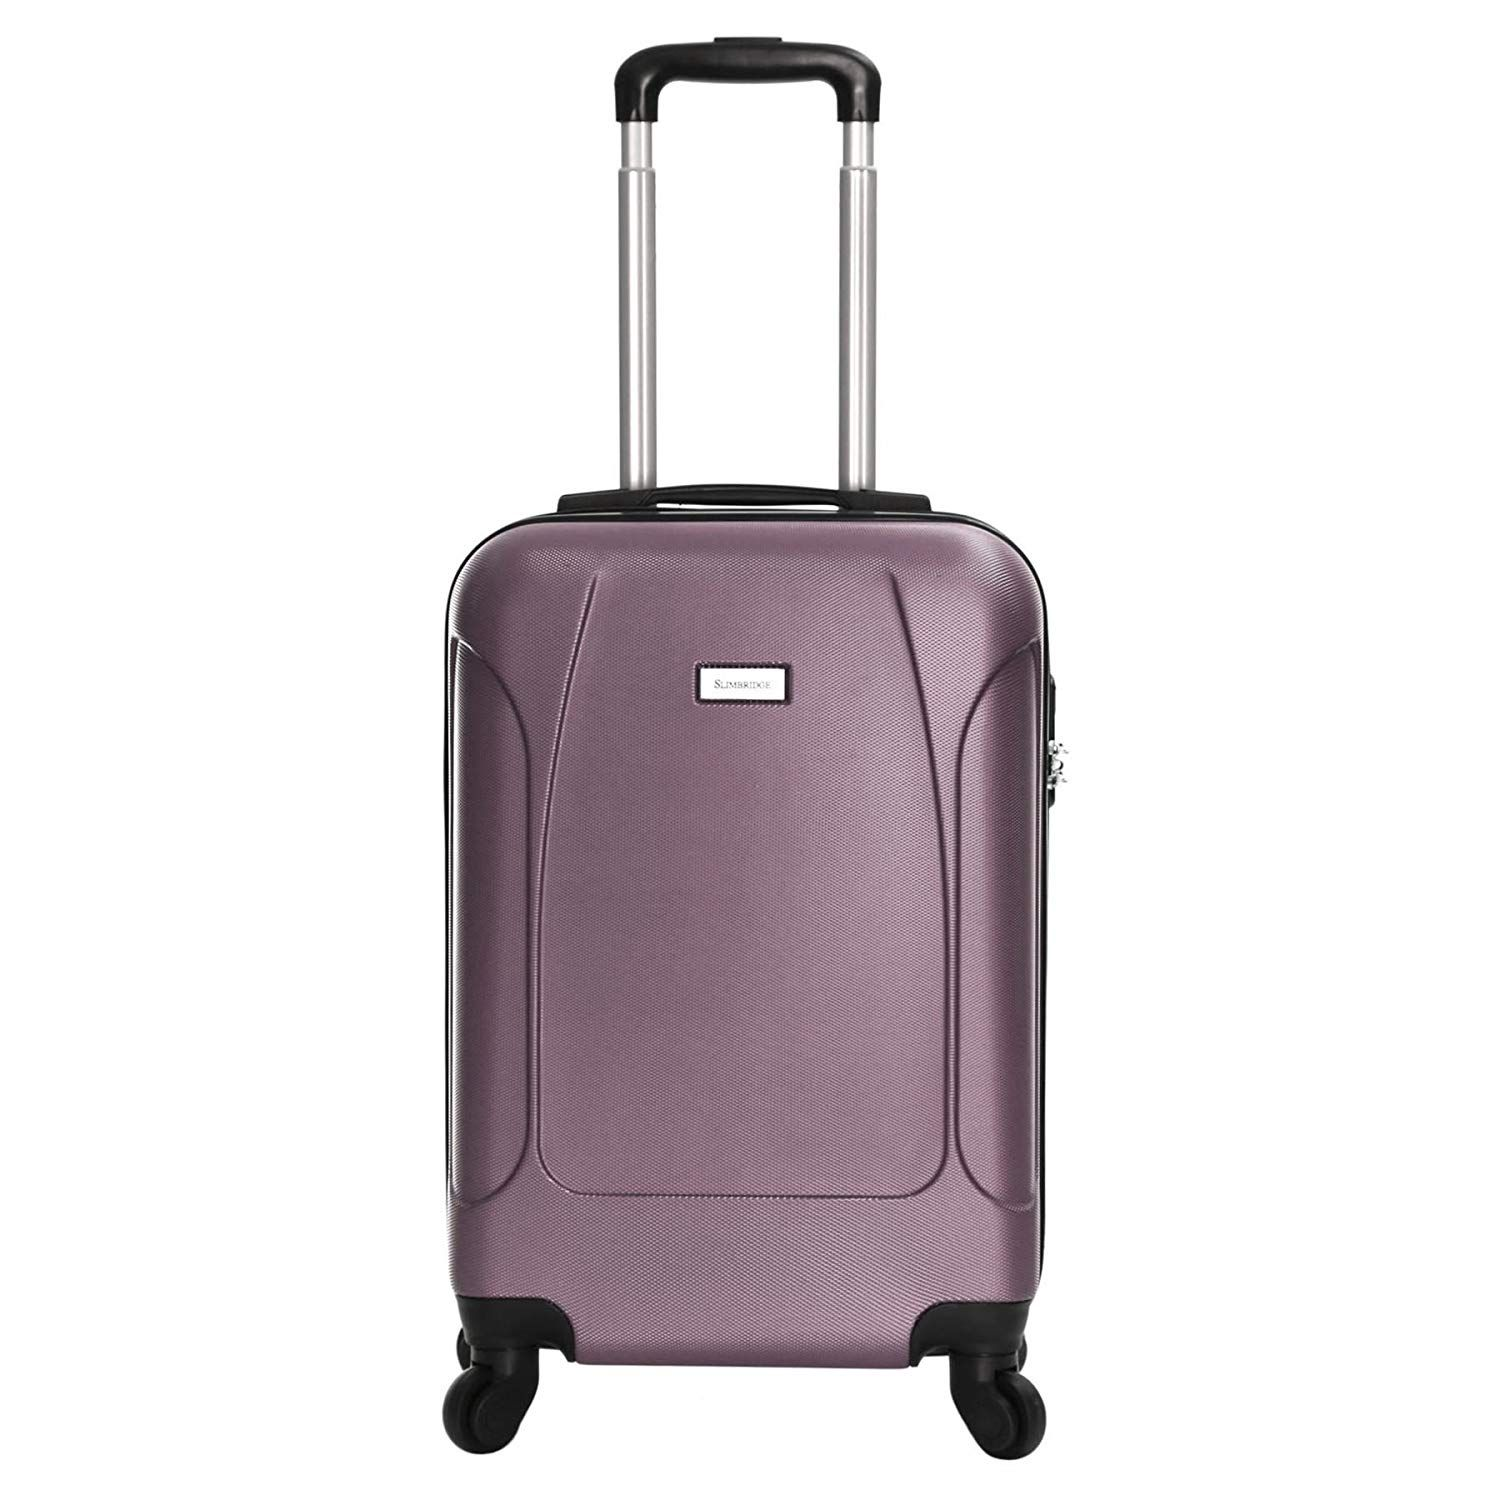 Slimbridge Alameda Abs Bagage Cabine Bagage A Main Valise Rigide Legere A 4 Roulettes Approuvees Pour Ryanair Easyjet Air Fran Valise Bagage A Main Bagage